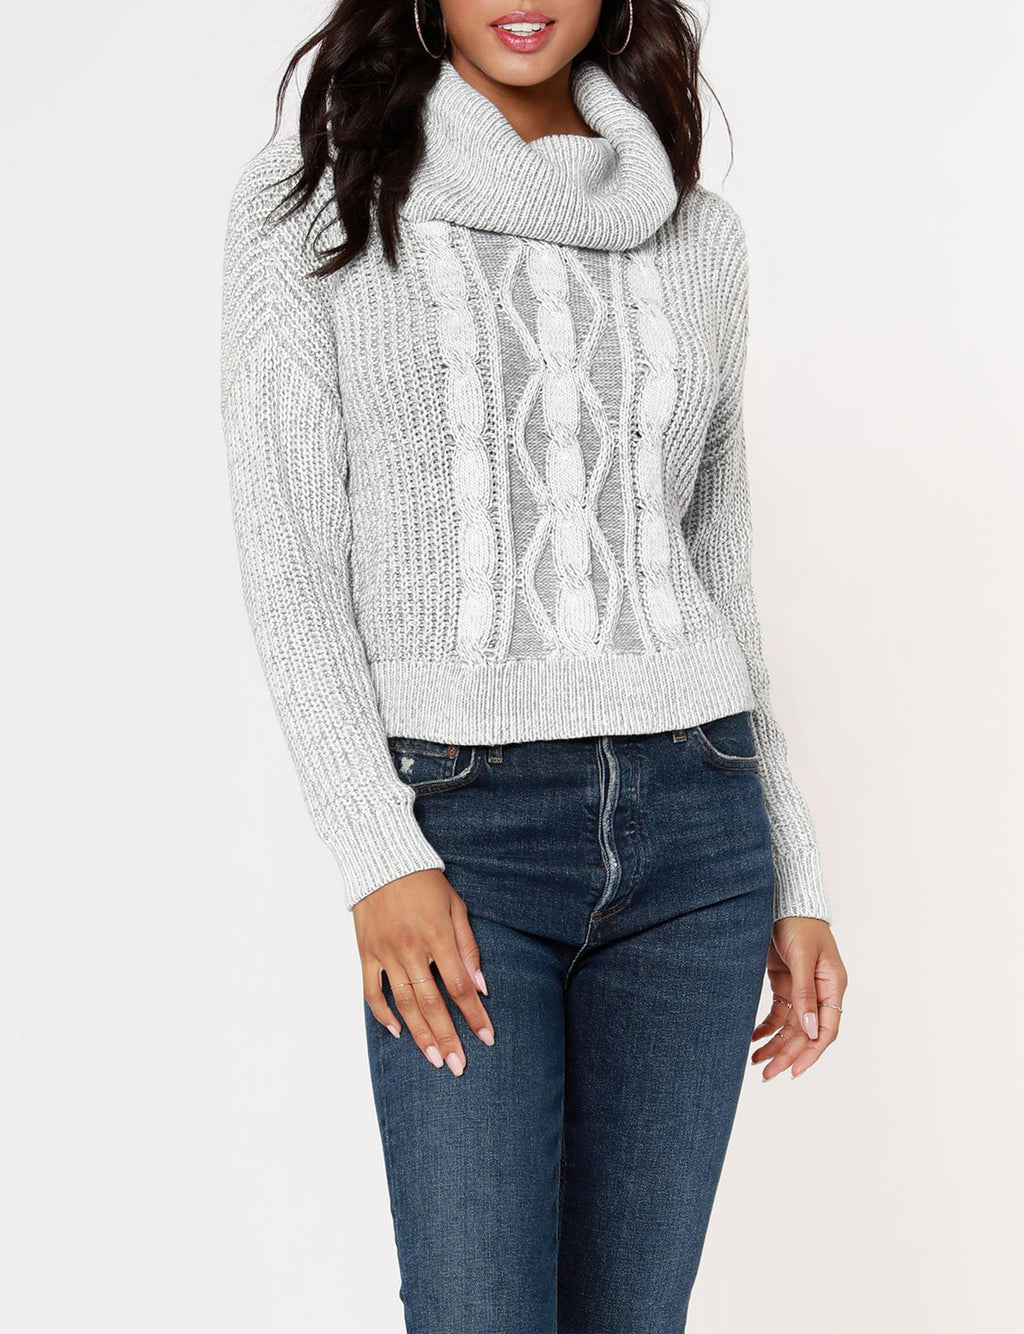 Turtle Neck Cropped Sweater in Ivory/Light Grey